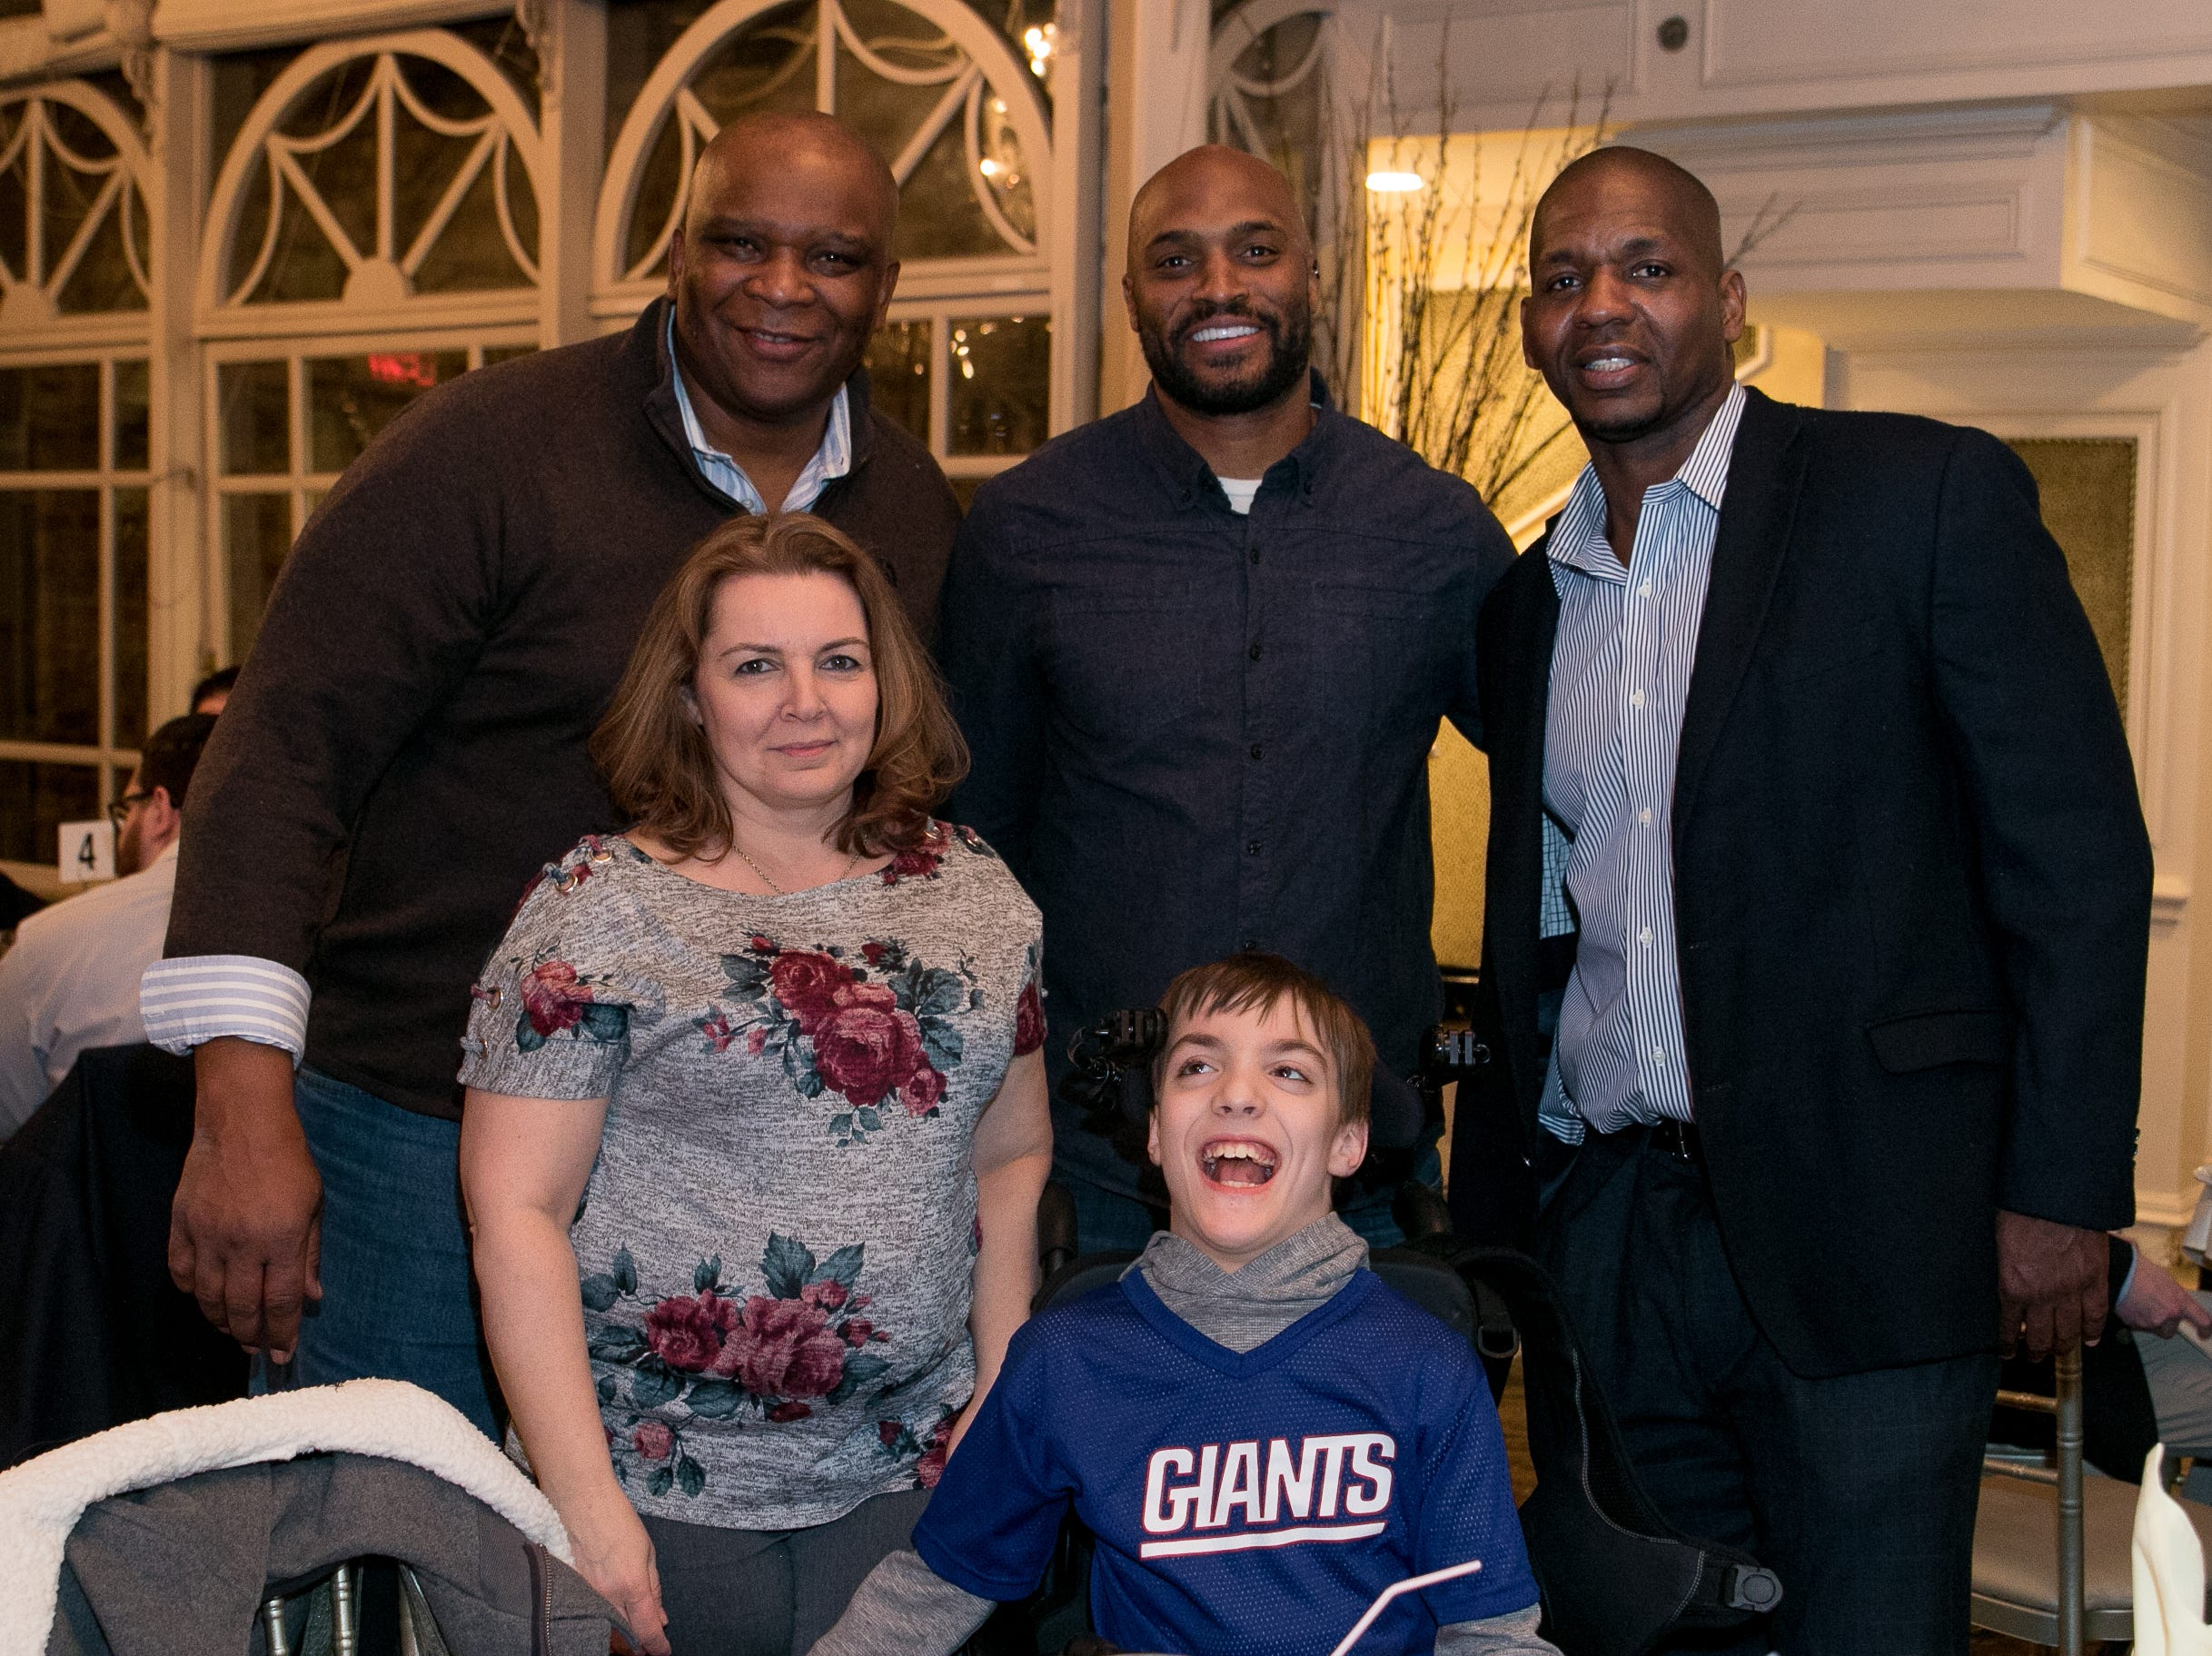 Former NY Giants Howard Cross, Amani Toomer and Sam Garnes with Tracy and Matthew Kulick. Rebuilding Together North Jersey held its third annual Beefsteak Dinner with former NY Giants Howard Cross, Amani Toomer, and Sam Garnes at the Brownstone in Paterson. 03/07/2019